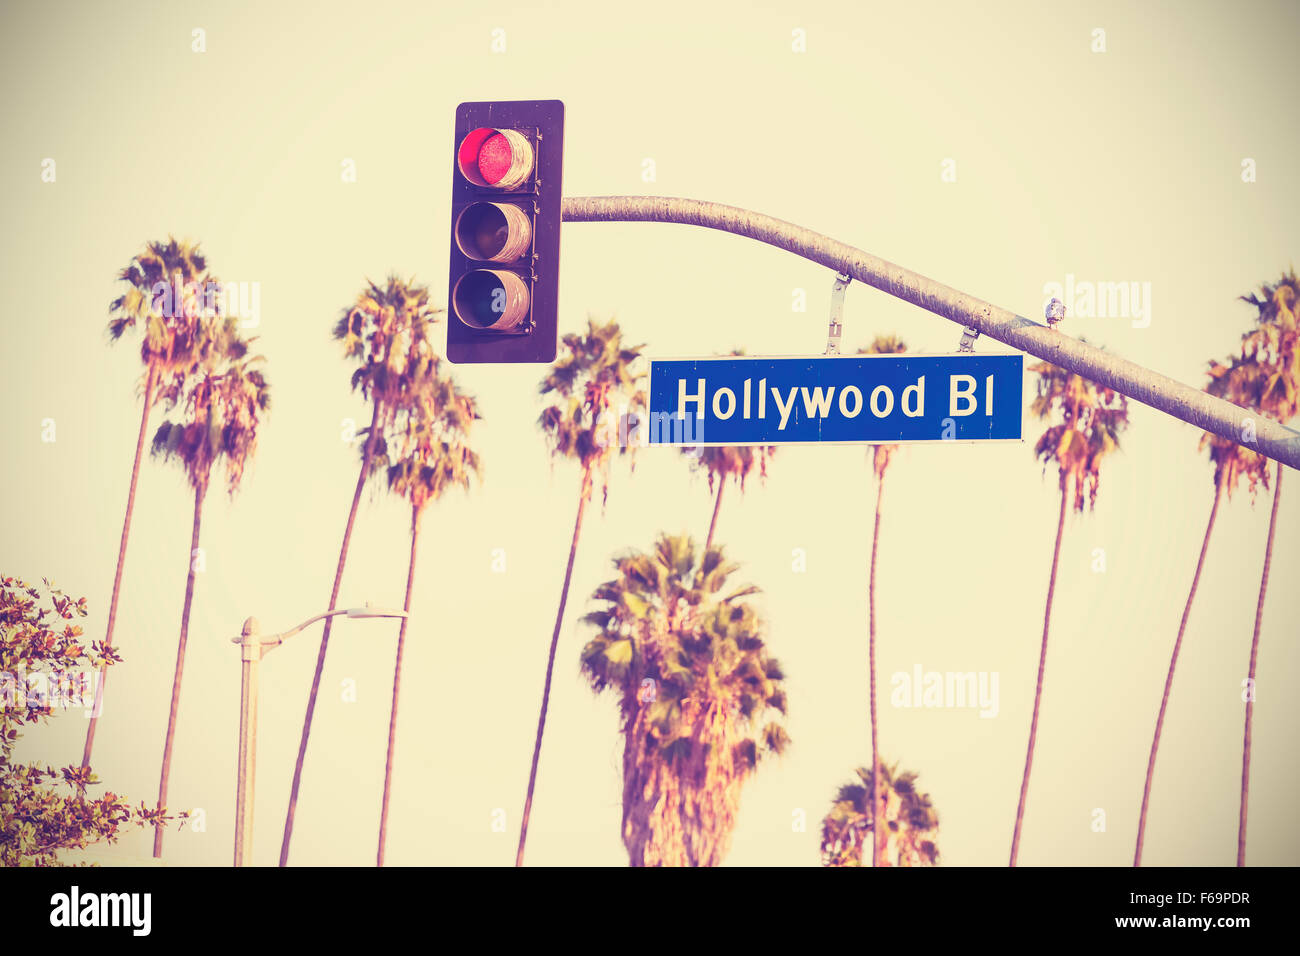 Vintage retro toned Hollywood boulevard sign and traffic lights with palm trees in the background, Los Angeles, Stock Photo